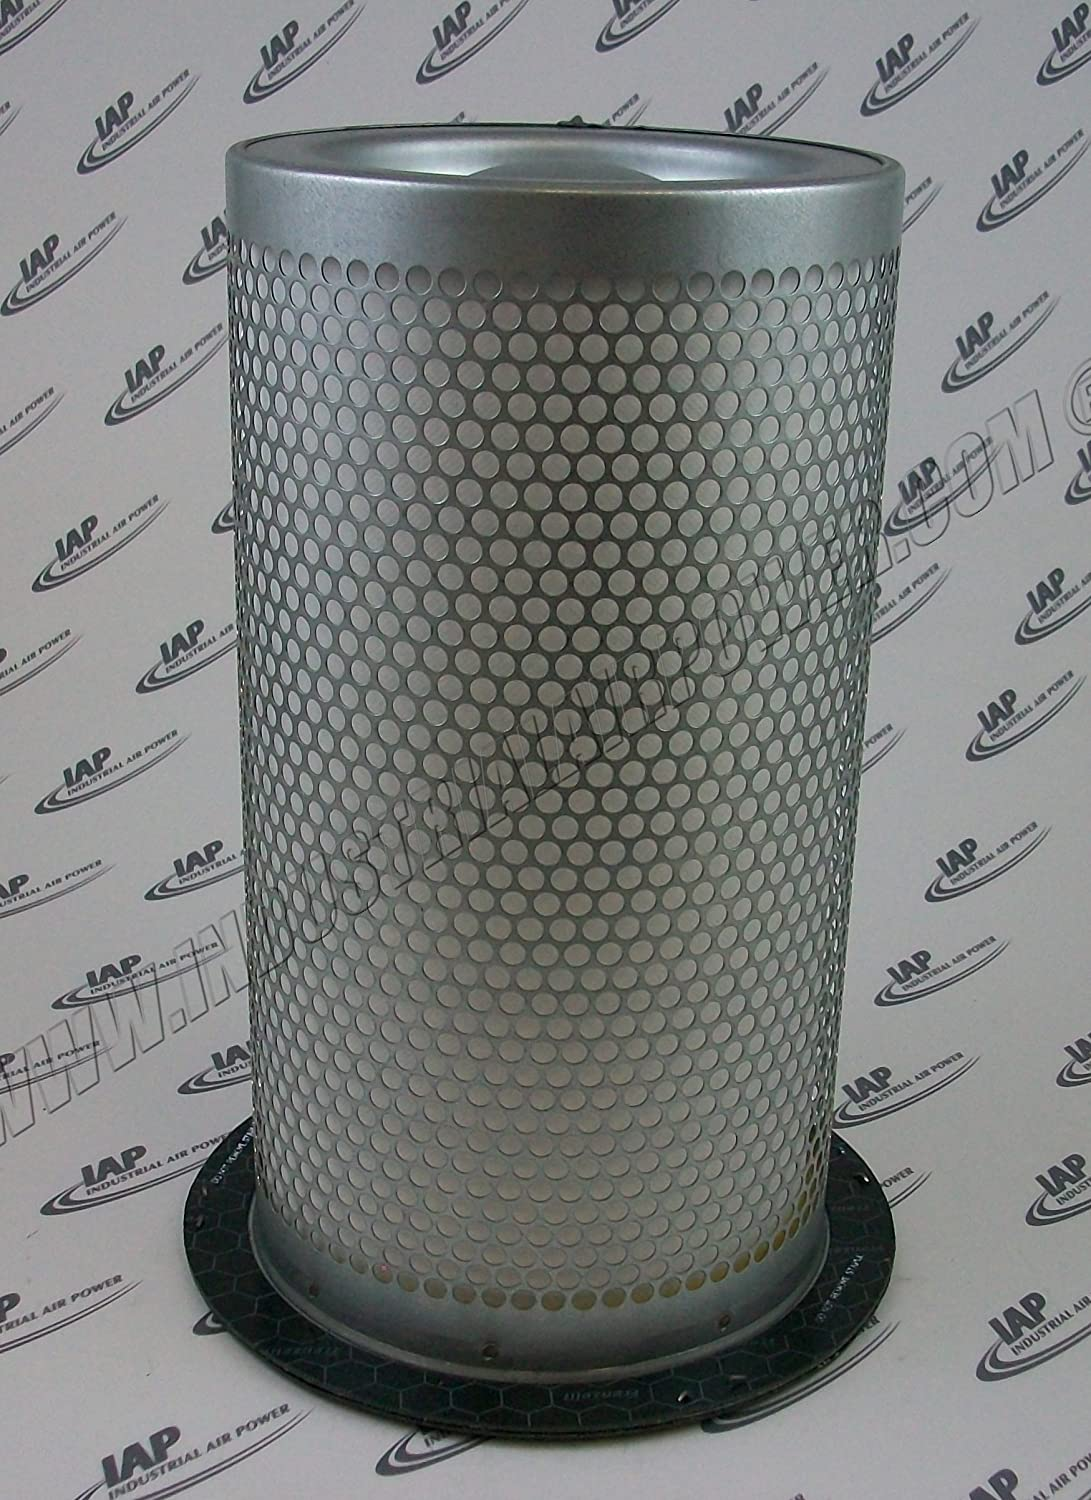 43-888-1 Air//Oil Separator Designed for use with Leroi compressors